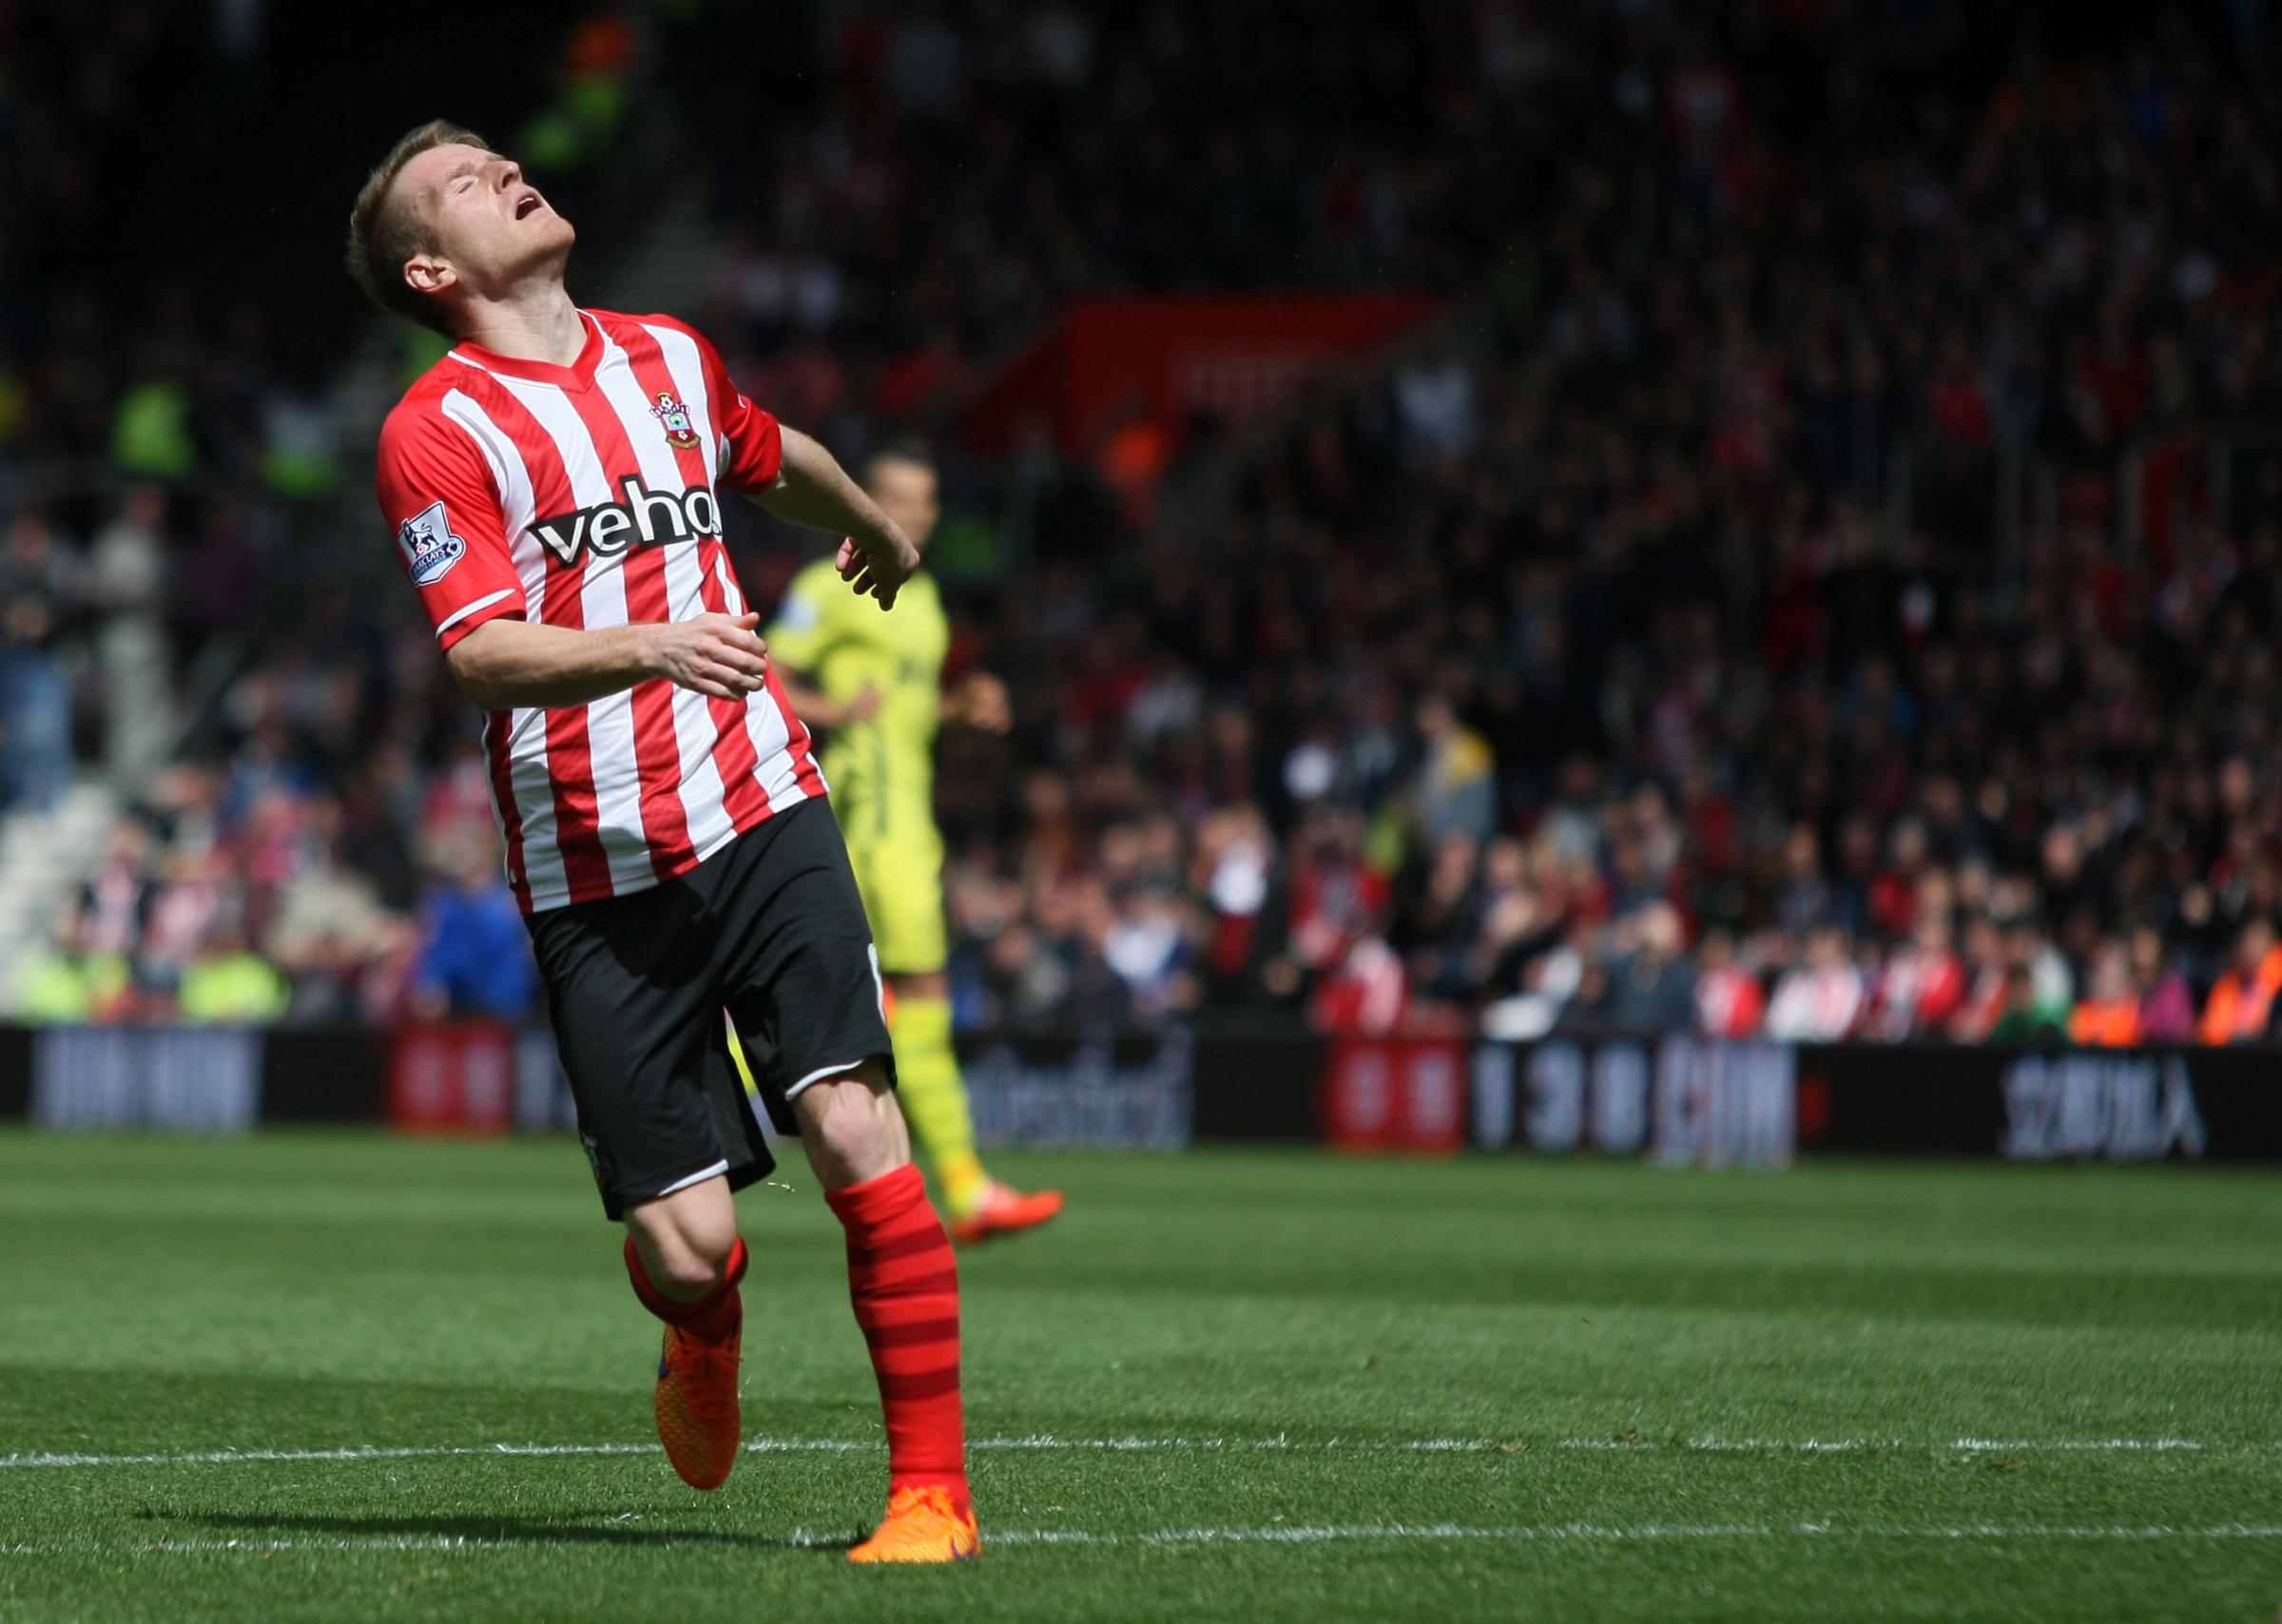 Steven Davis rues missing a chance to score in Saturday's match against Tottenham